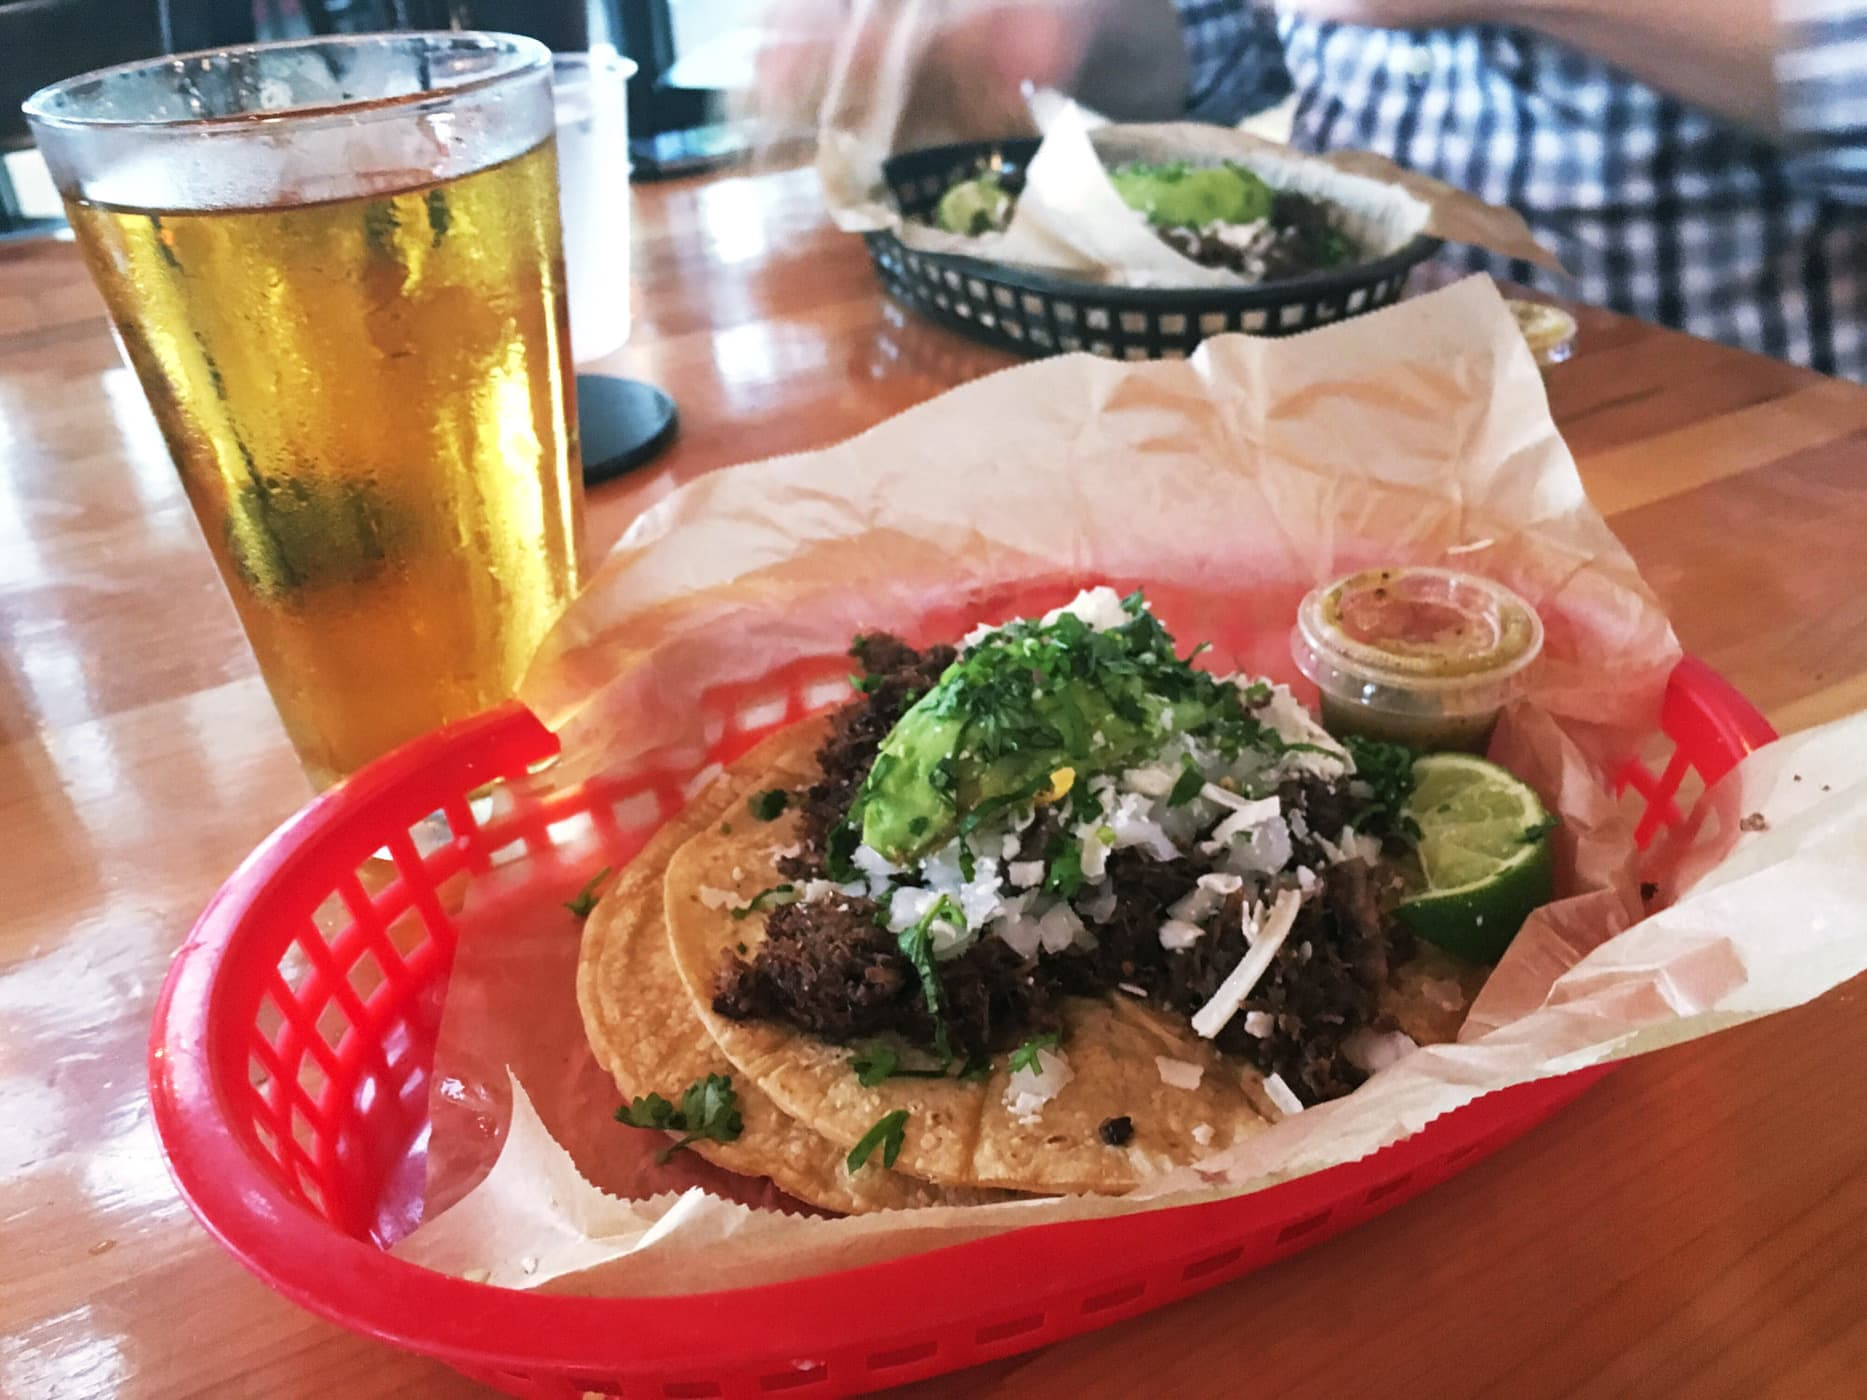 The Democrat taco at Torchy's Tacos in Austin, Texas.